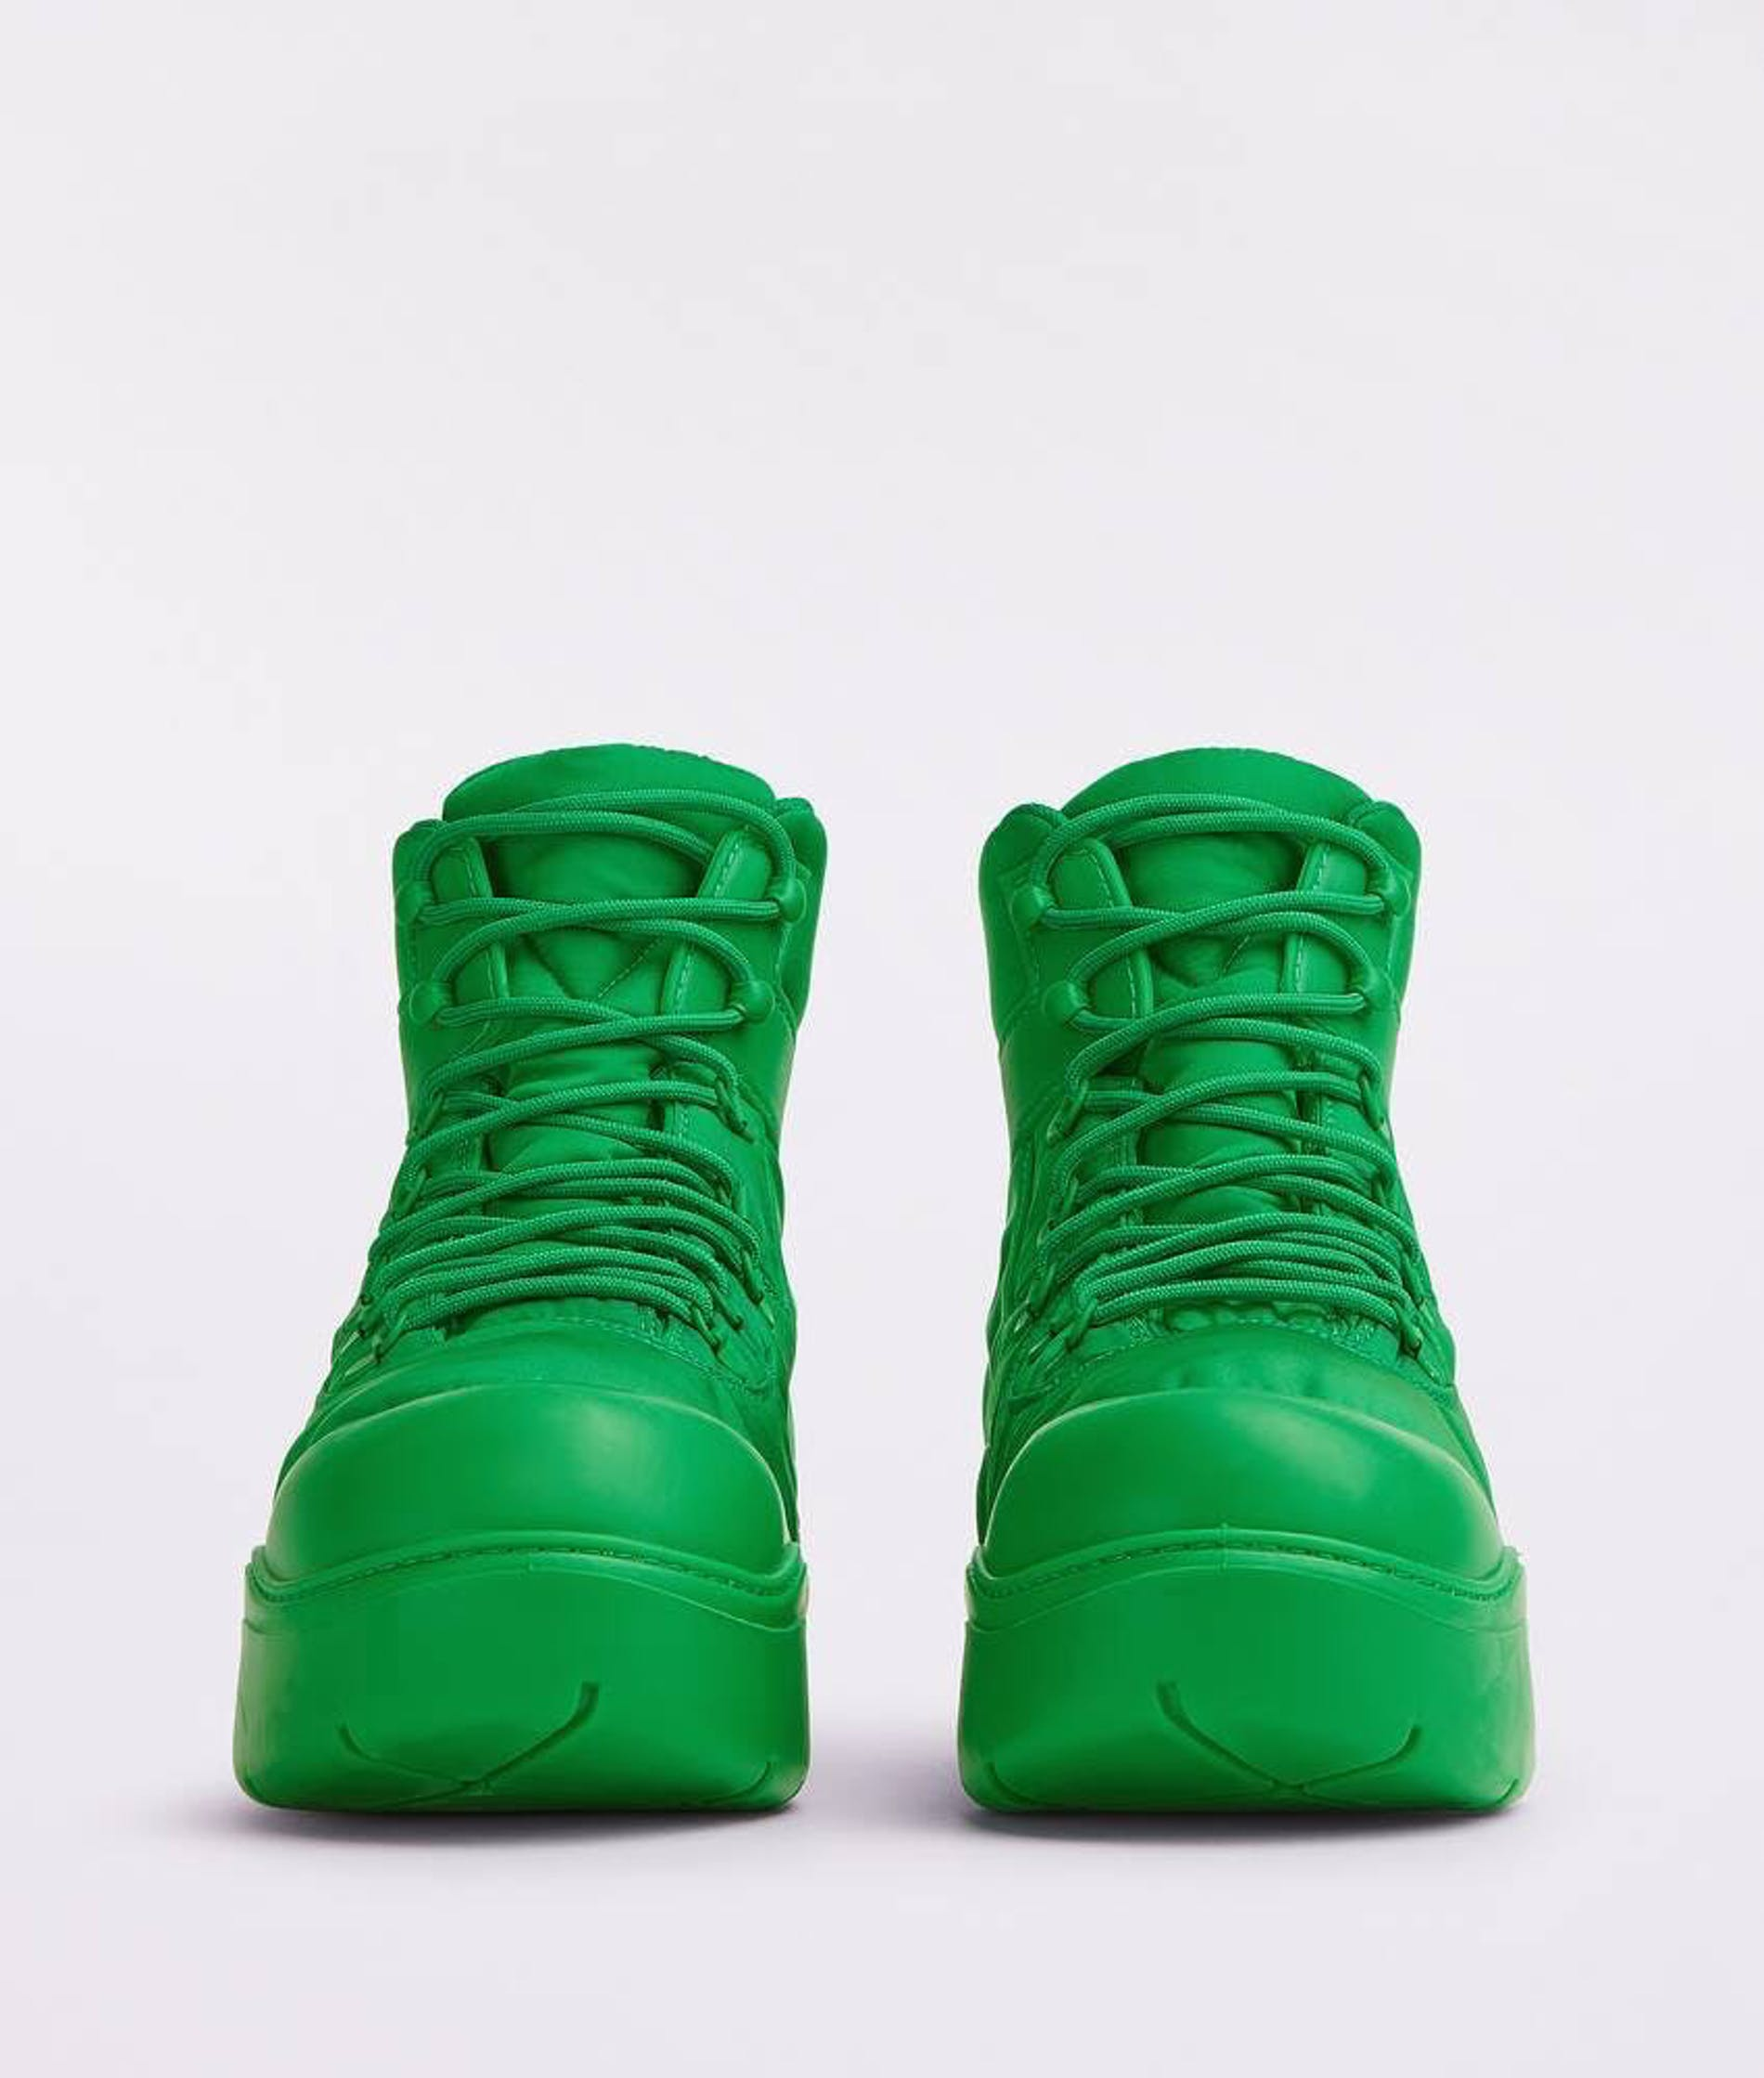 1632303237883247 1631214345 puddle bomber boots